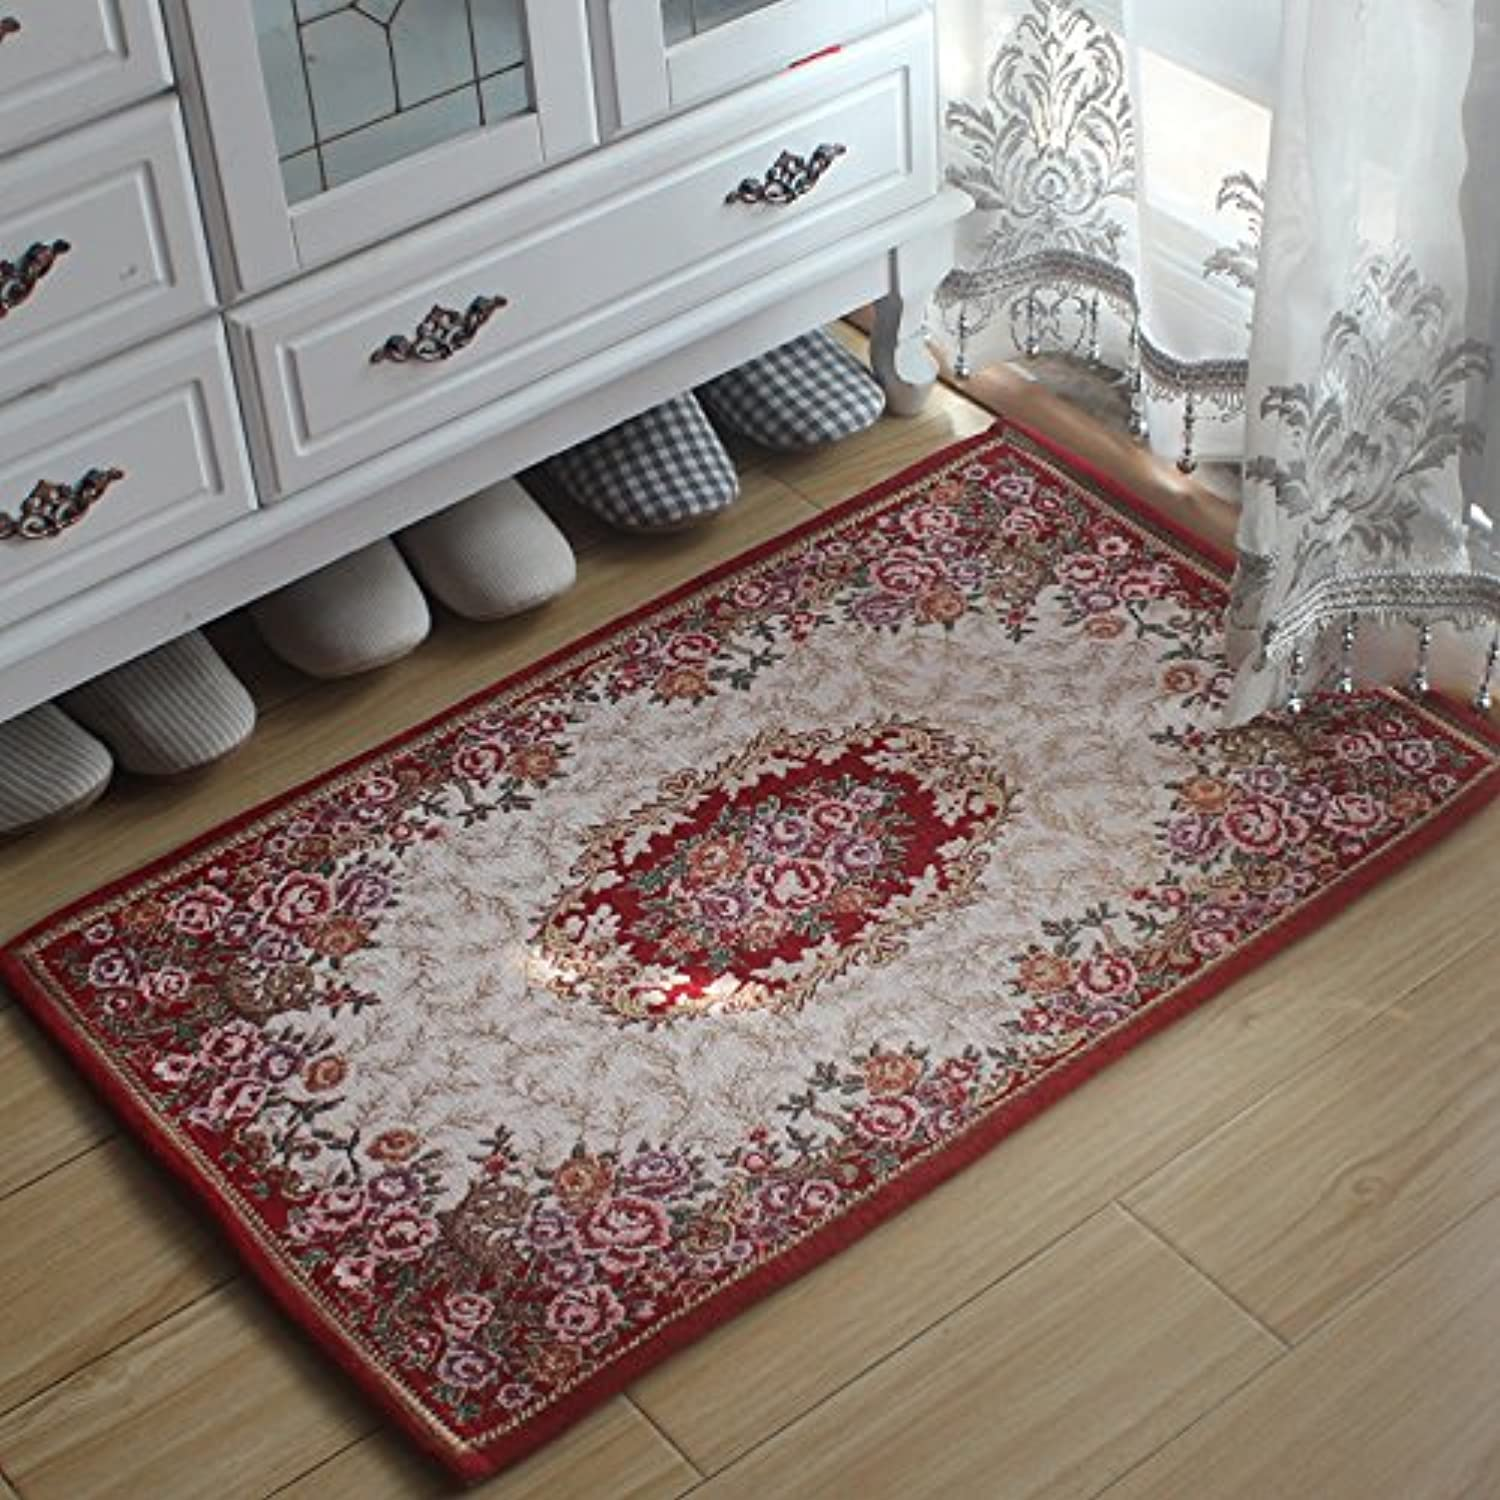 JinYiDian'Shop-Continental Mats Door Mat Feet Bedroom Living Room To Absorb Water ,4060Cm,O